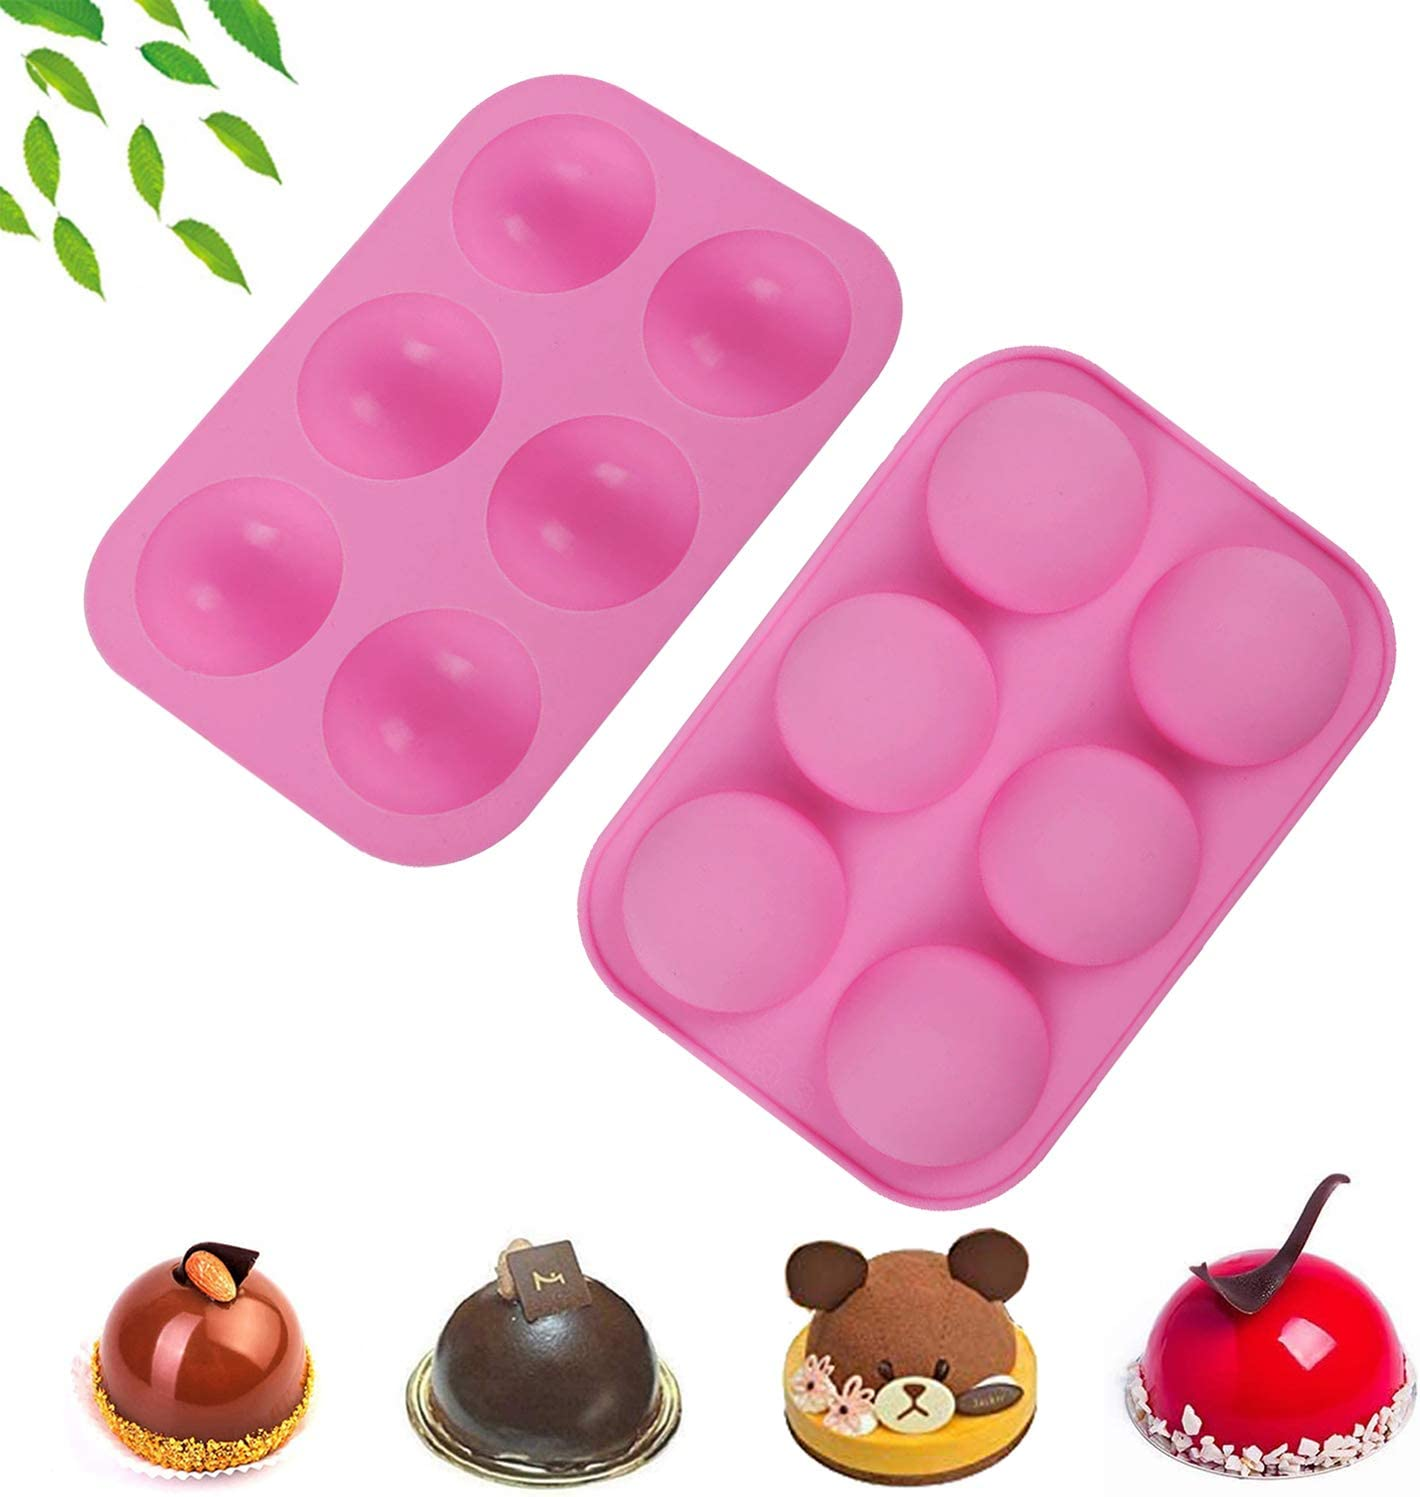 6 Big Holes Red 2PCs Silicone Mold Chocolate Mold for Baking Chocolate Mold DIY Nonstick Cake Mold for Chocolate Bomb,Cup Cake,Muffin,Jelly,Pudding